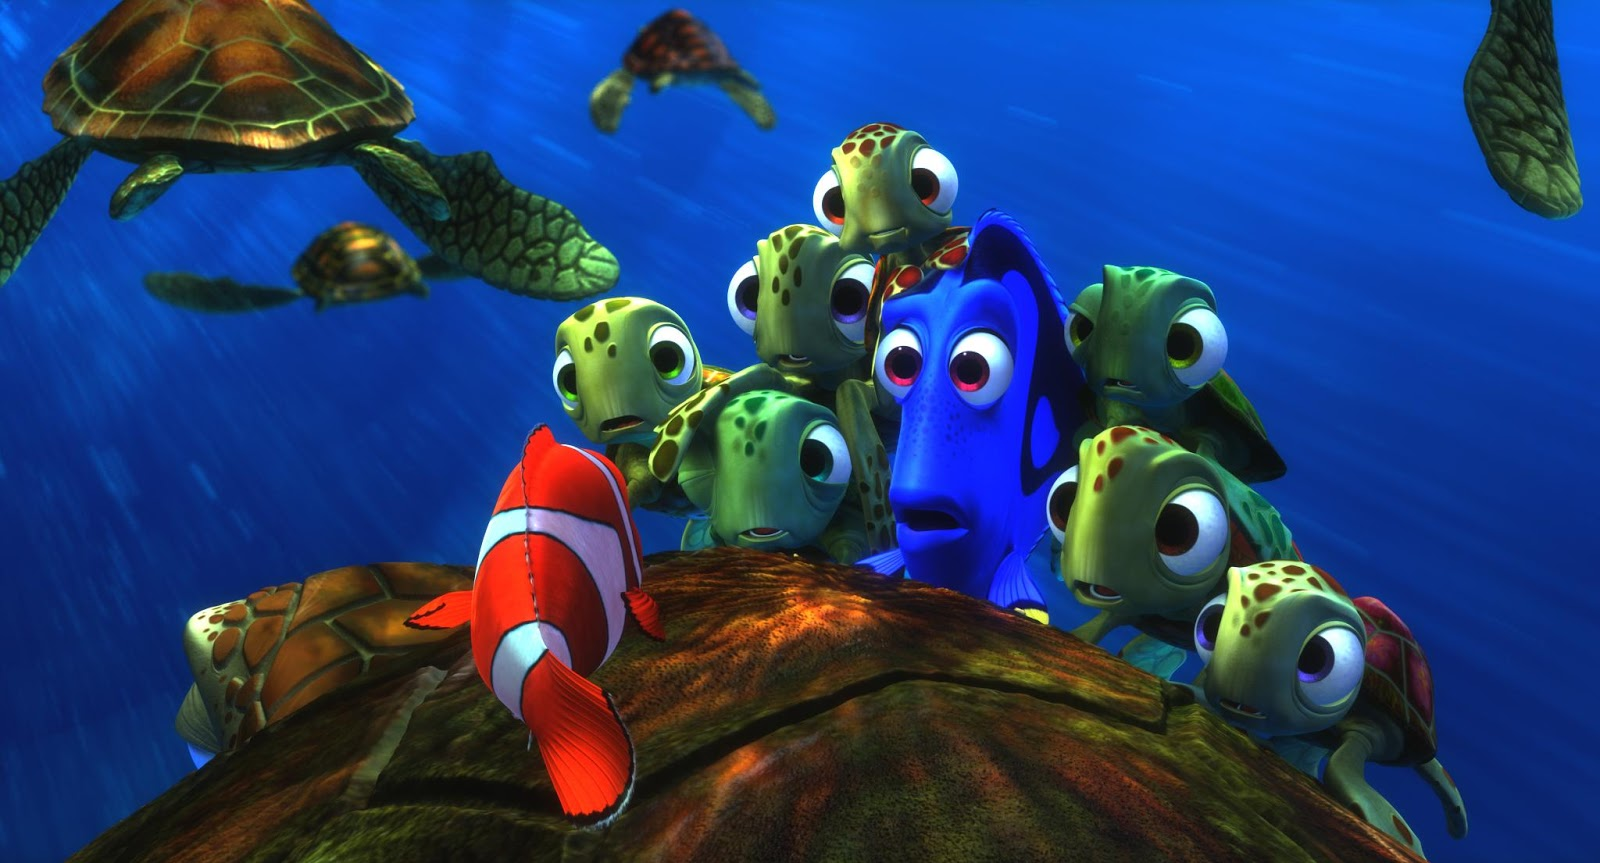 disney hd wallpapers finding nemo hd wallpapers